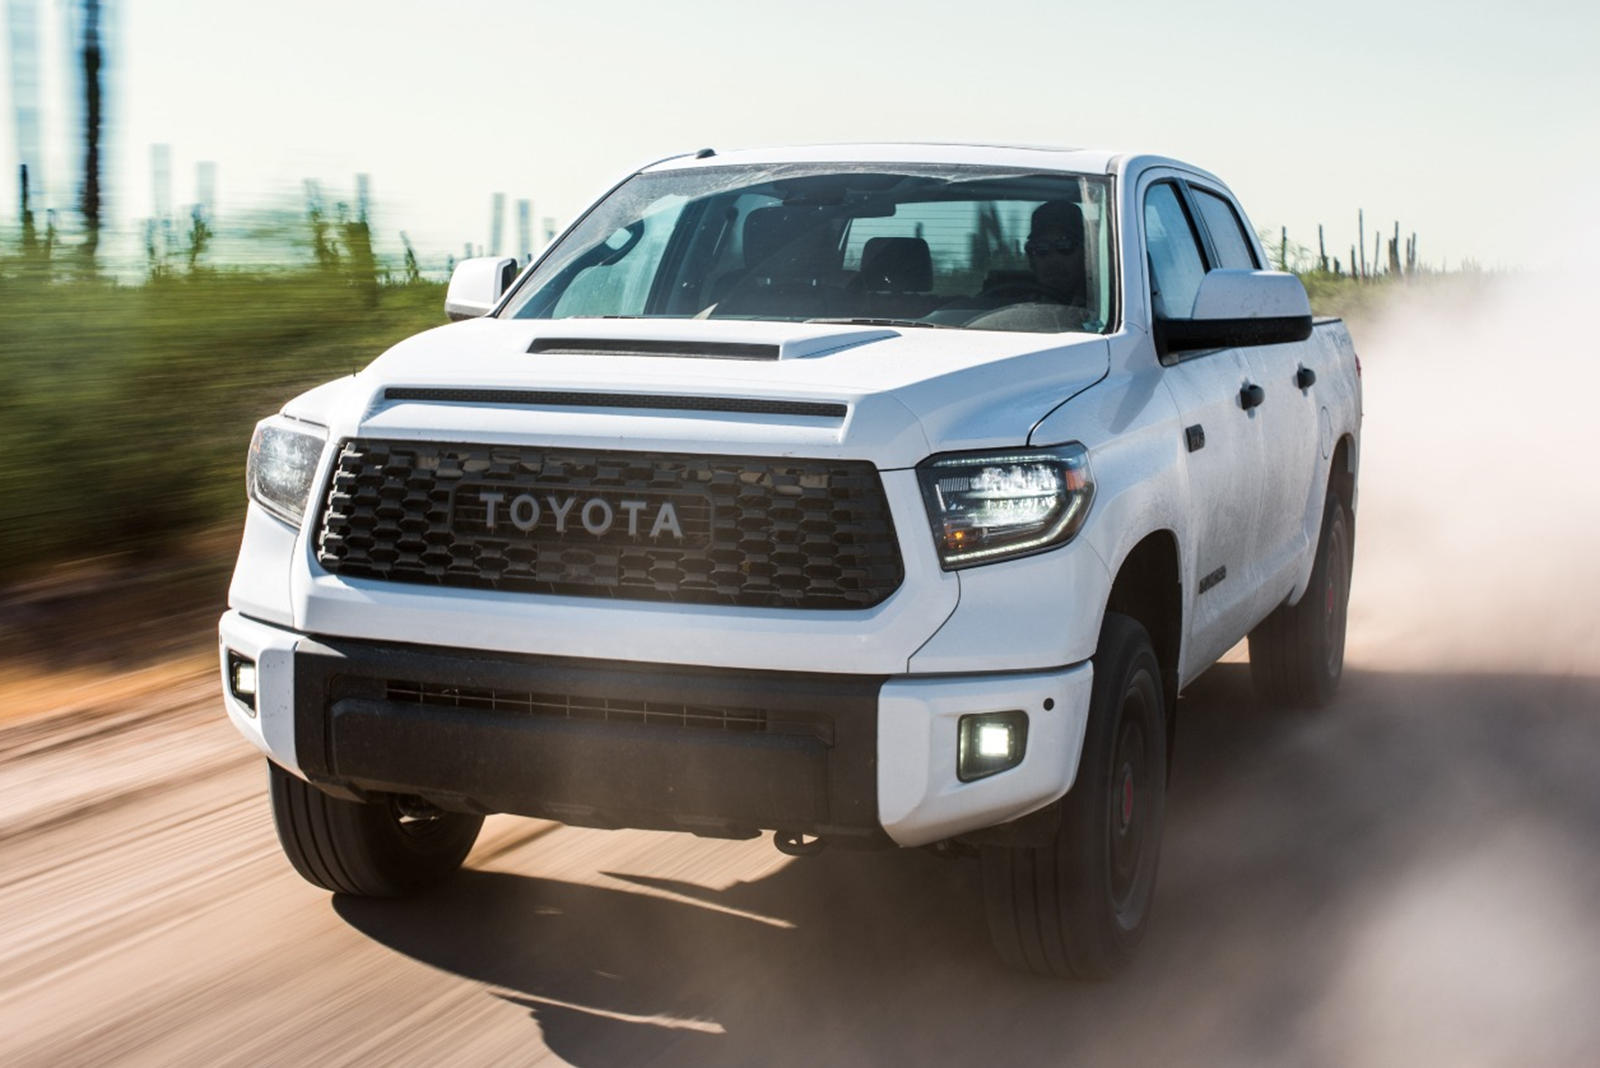 You Can Buy A 2019 Toyota Tundra TRD Pro For Less Than A New Ford Raptor